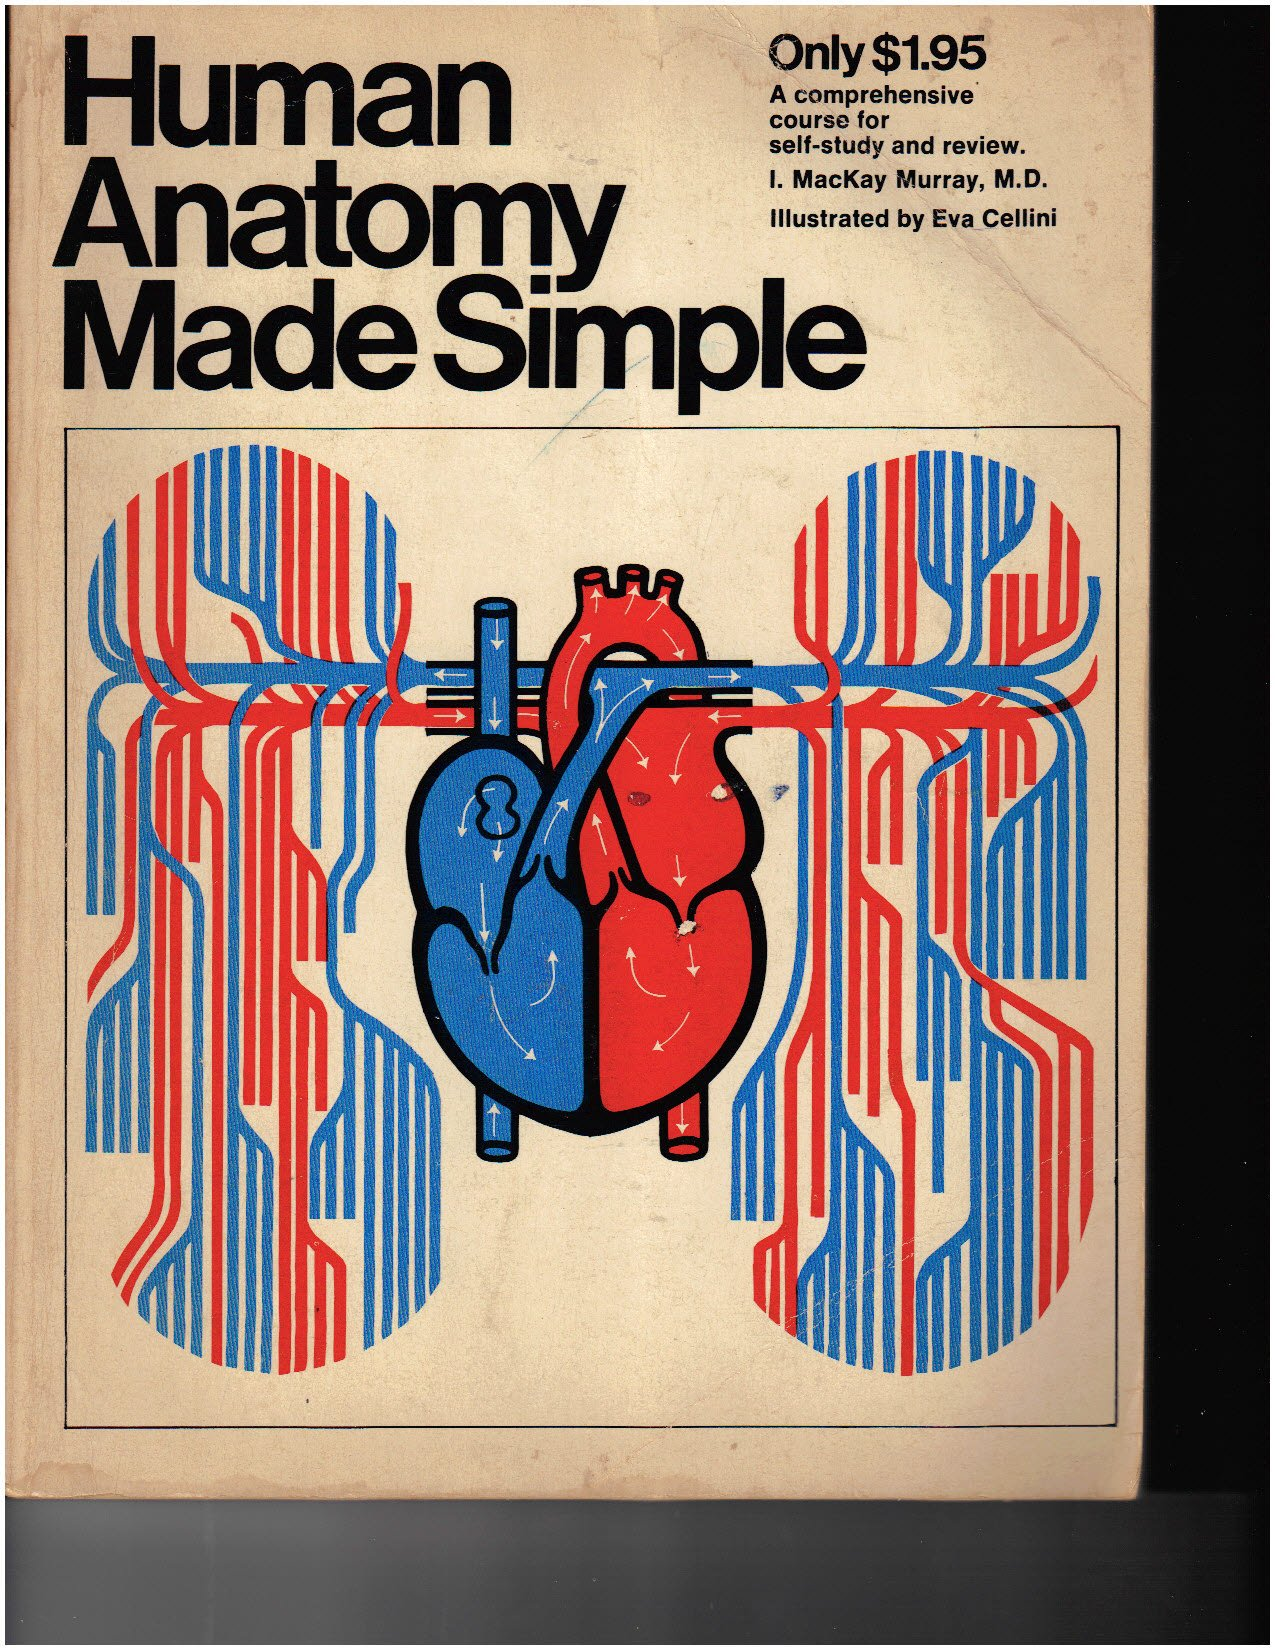 Human Anatomy Made Simple: Irwin MacKay Murray: 9780385011167 ...